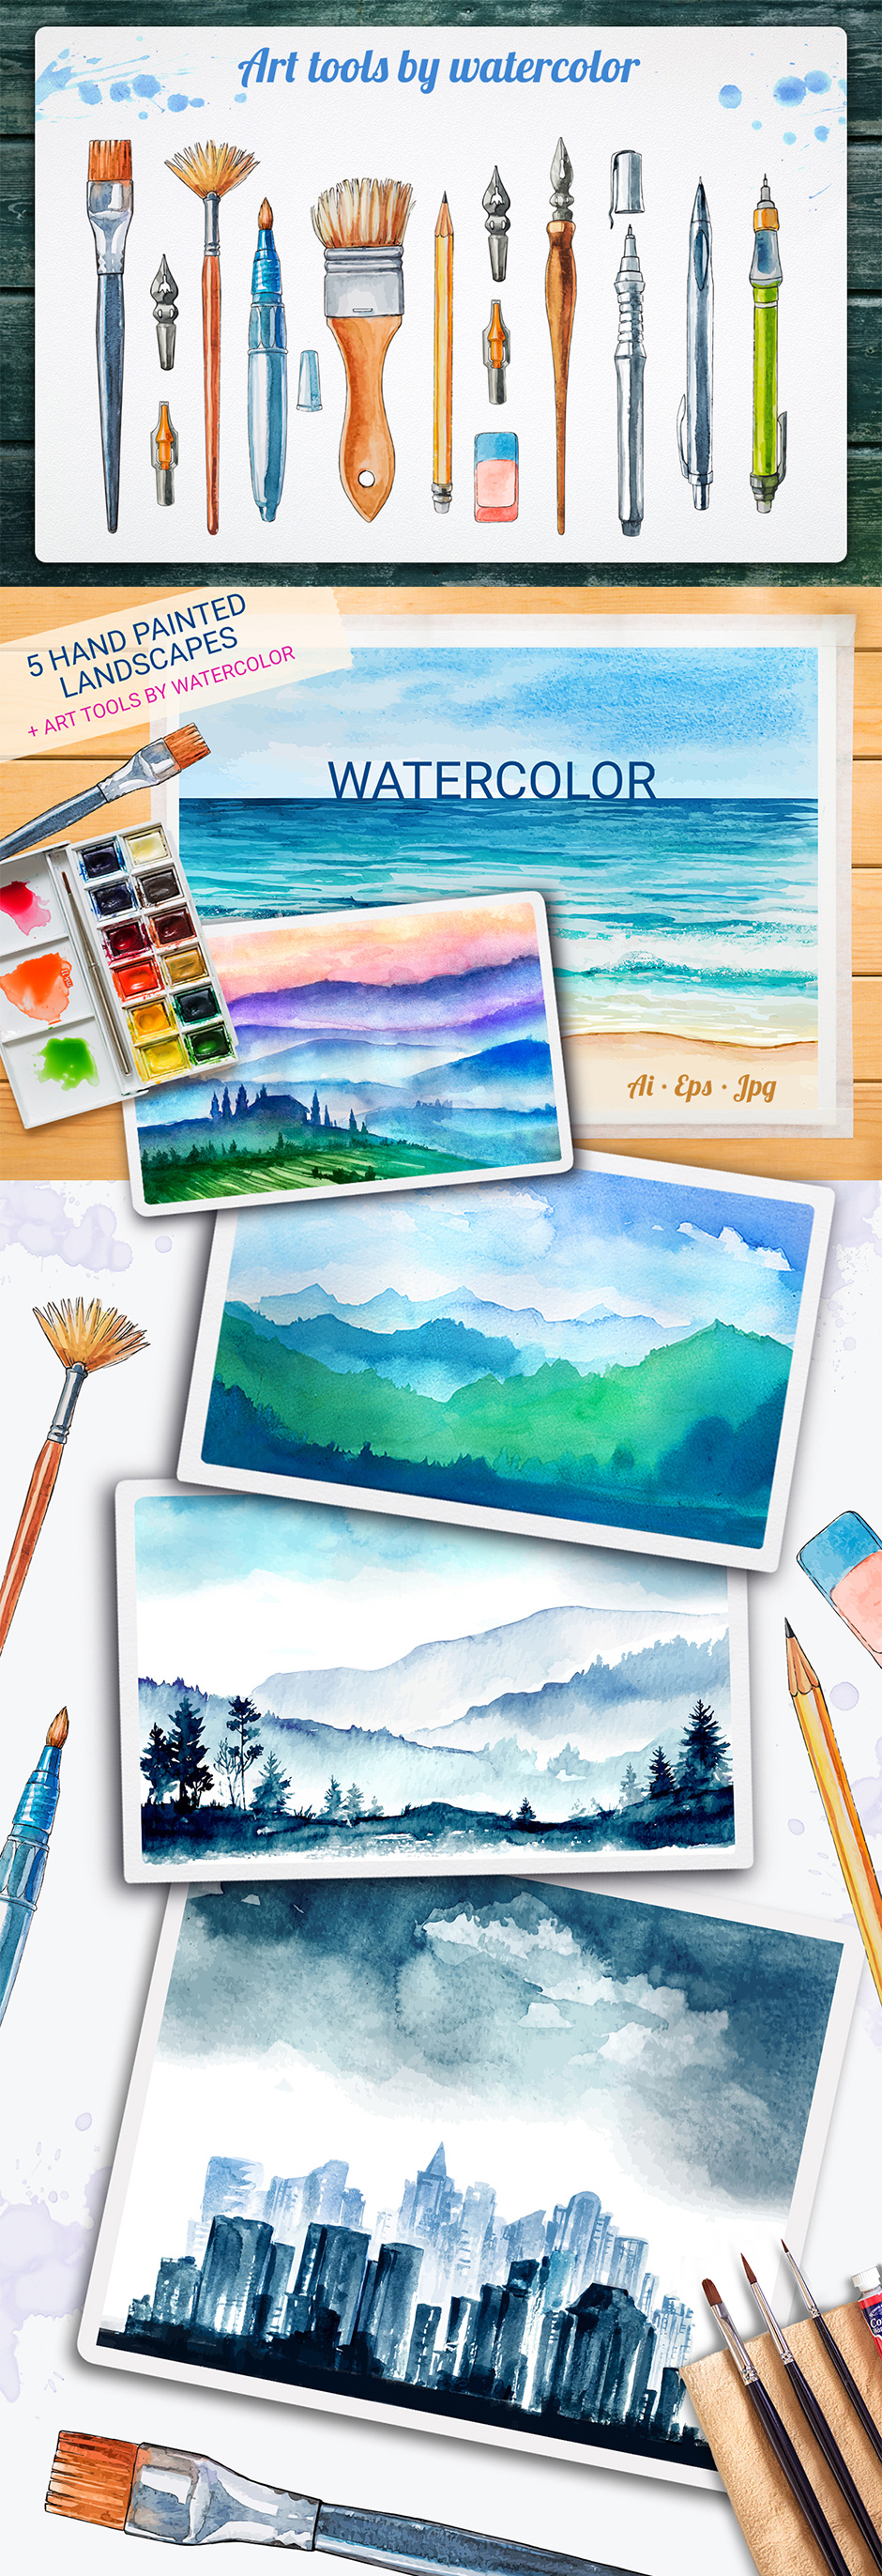 Watercolor Vector Landscapes Vol. 1